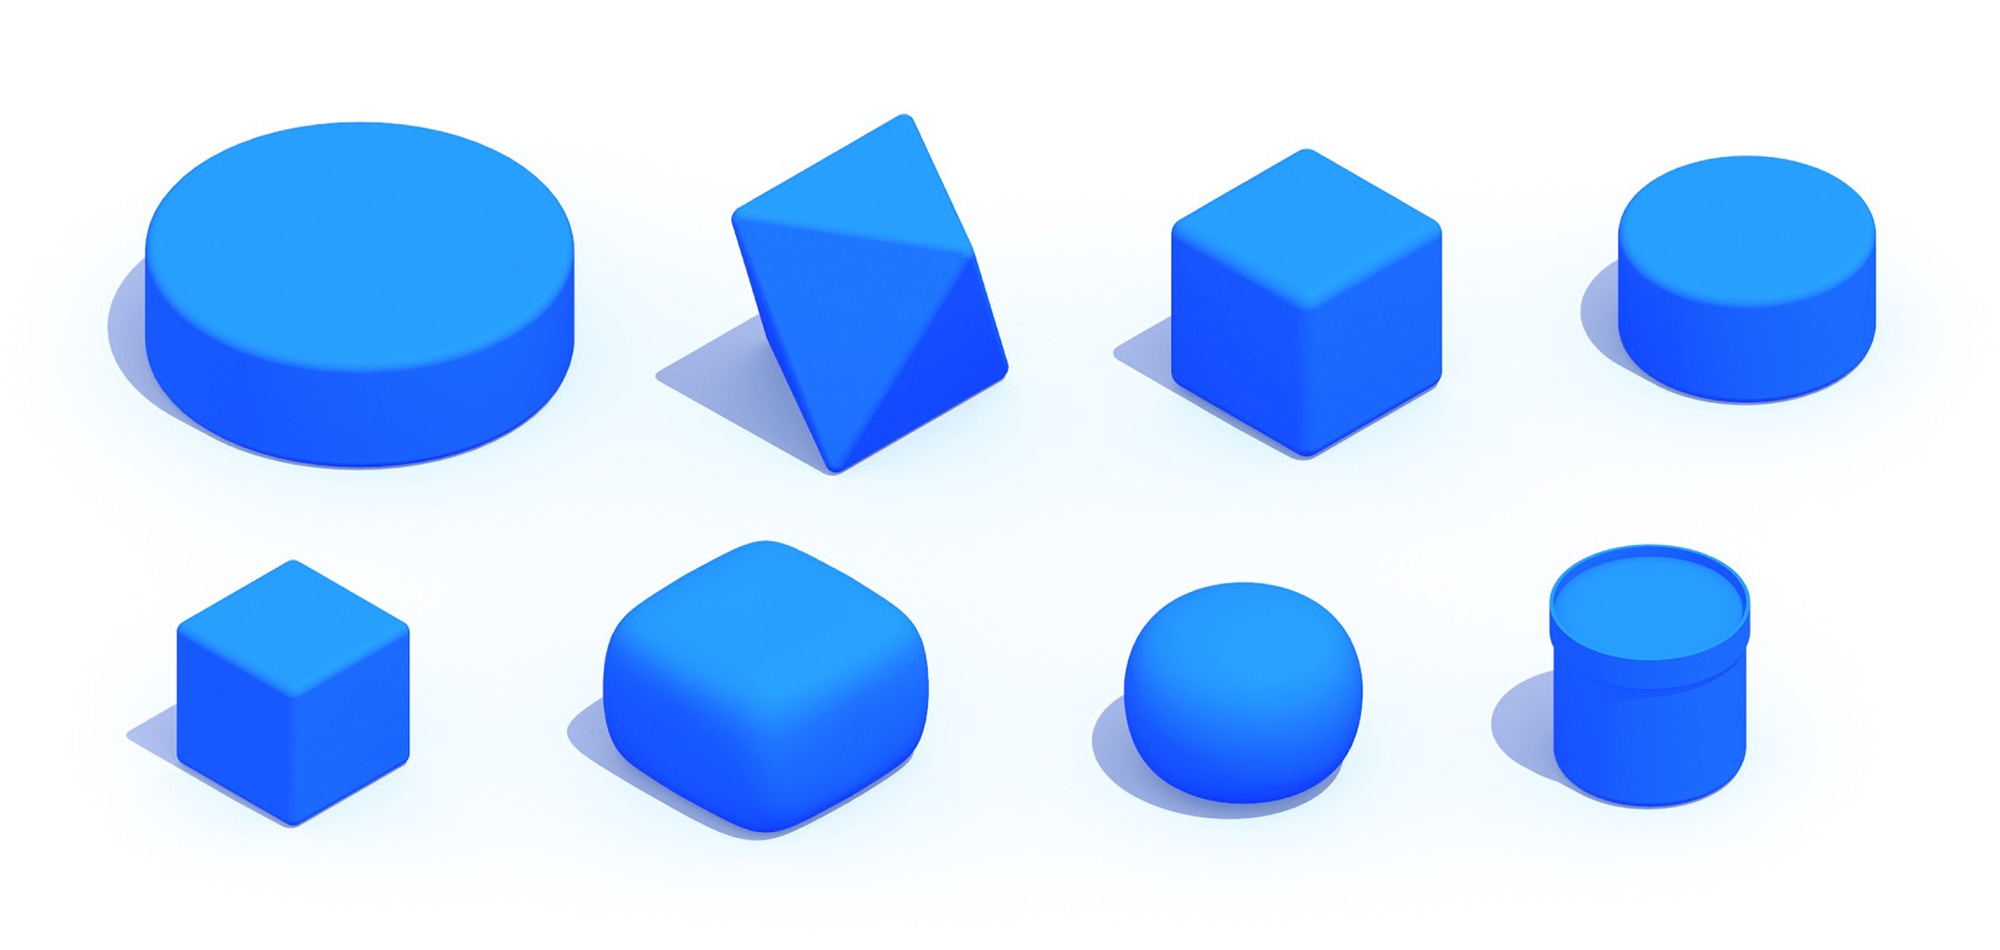 3D perspective of a collection of Poufs showing many different sizes, styles, and designs